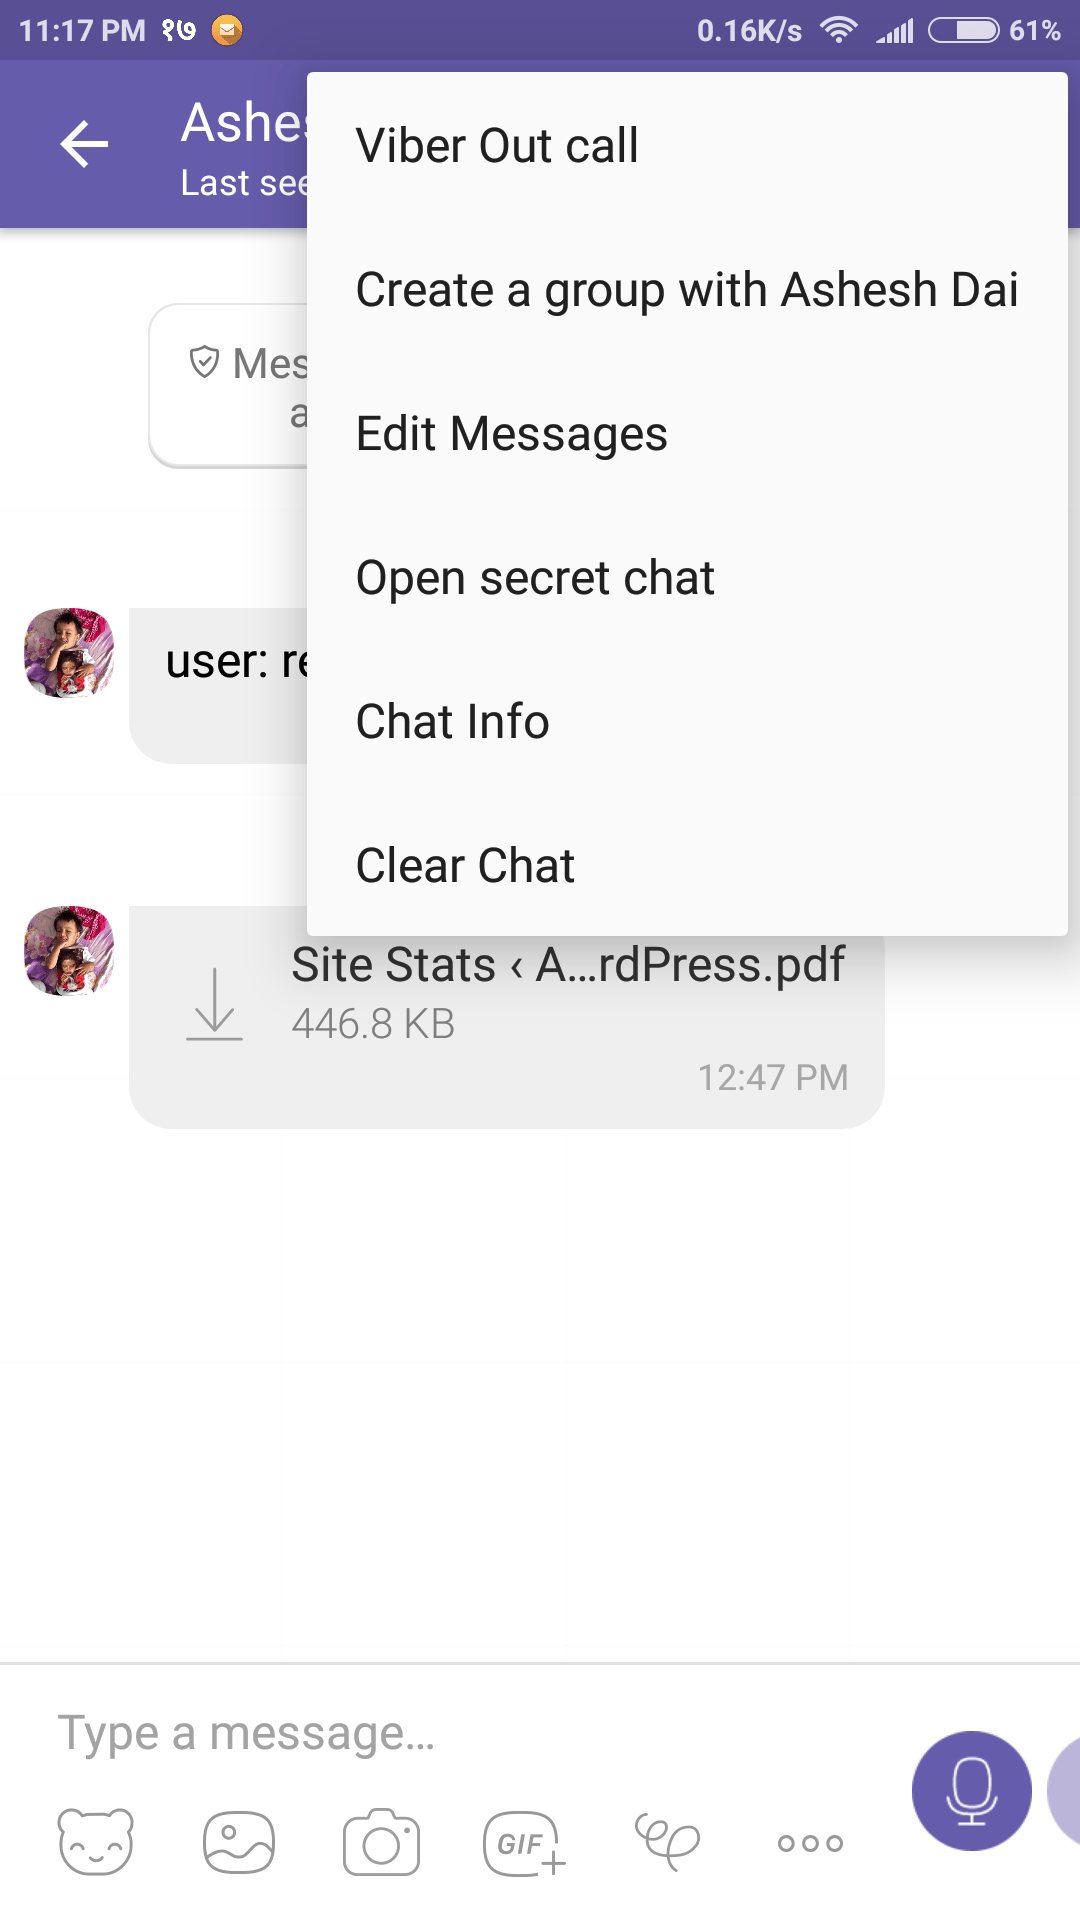 HOW TO USE SECRET CHAT FEATURE IN VIBER FROM YOUR SMARTPHONE?